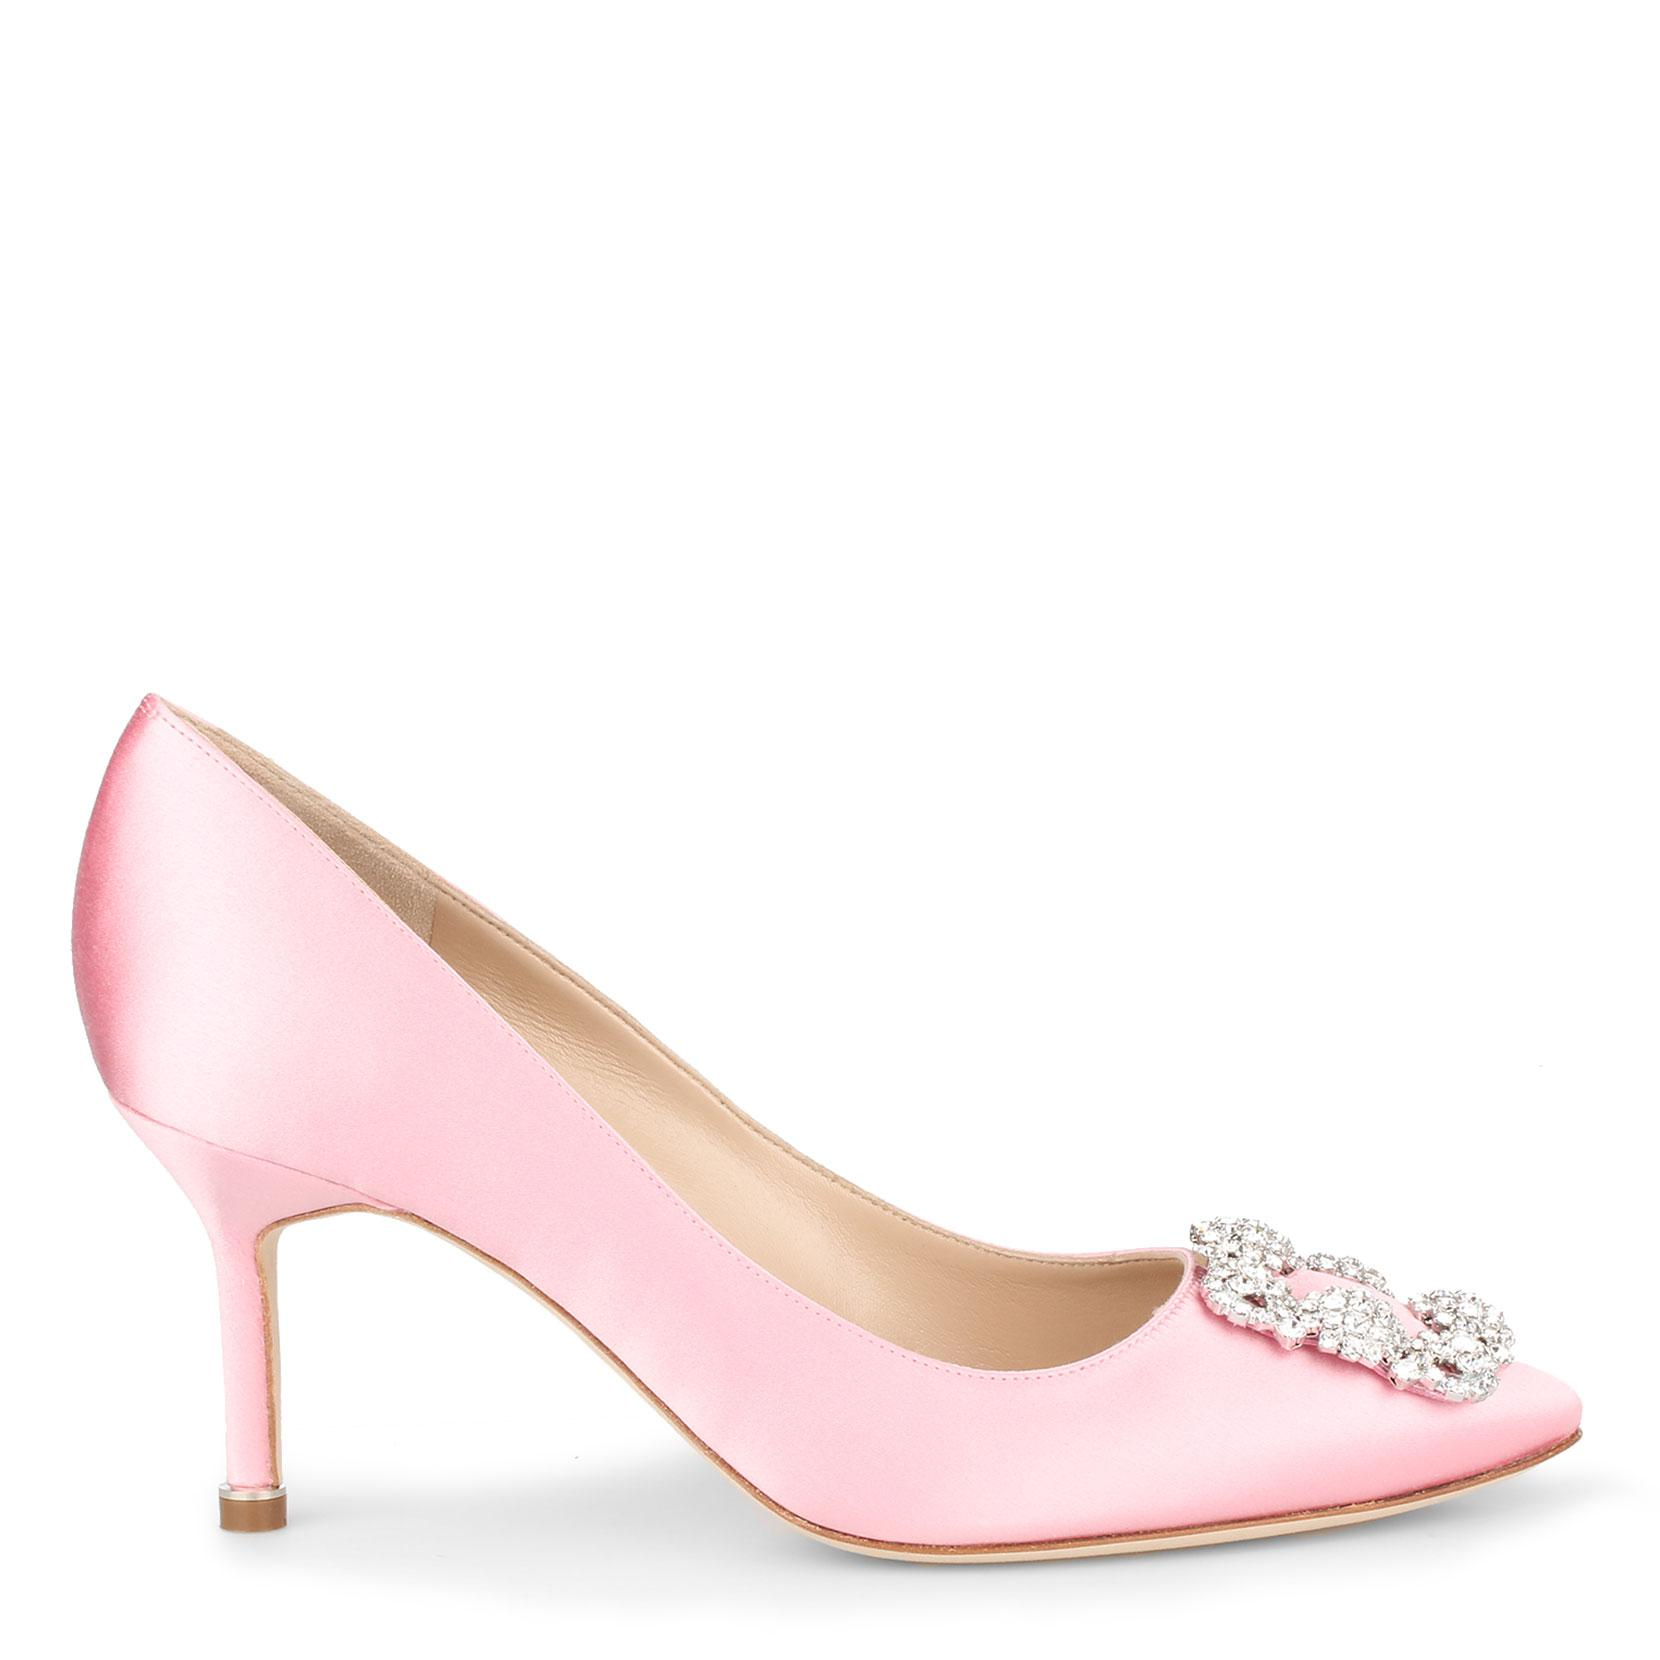 Hangisi 70 light blush satin pumps Manolo Blahnik PL4rP6CCD